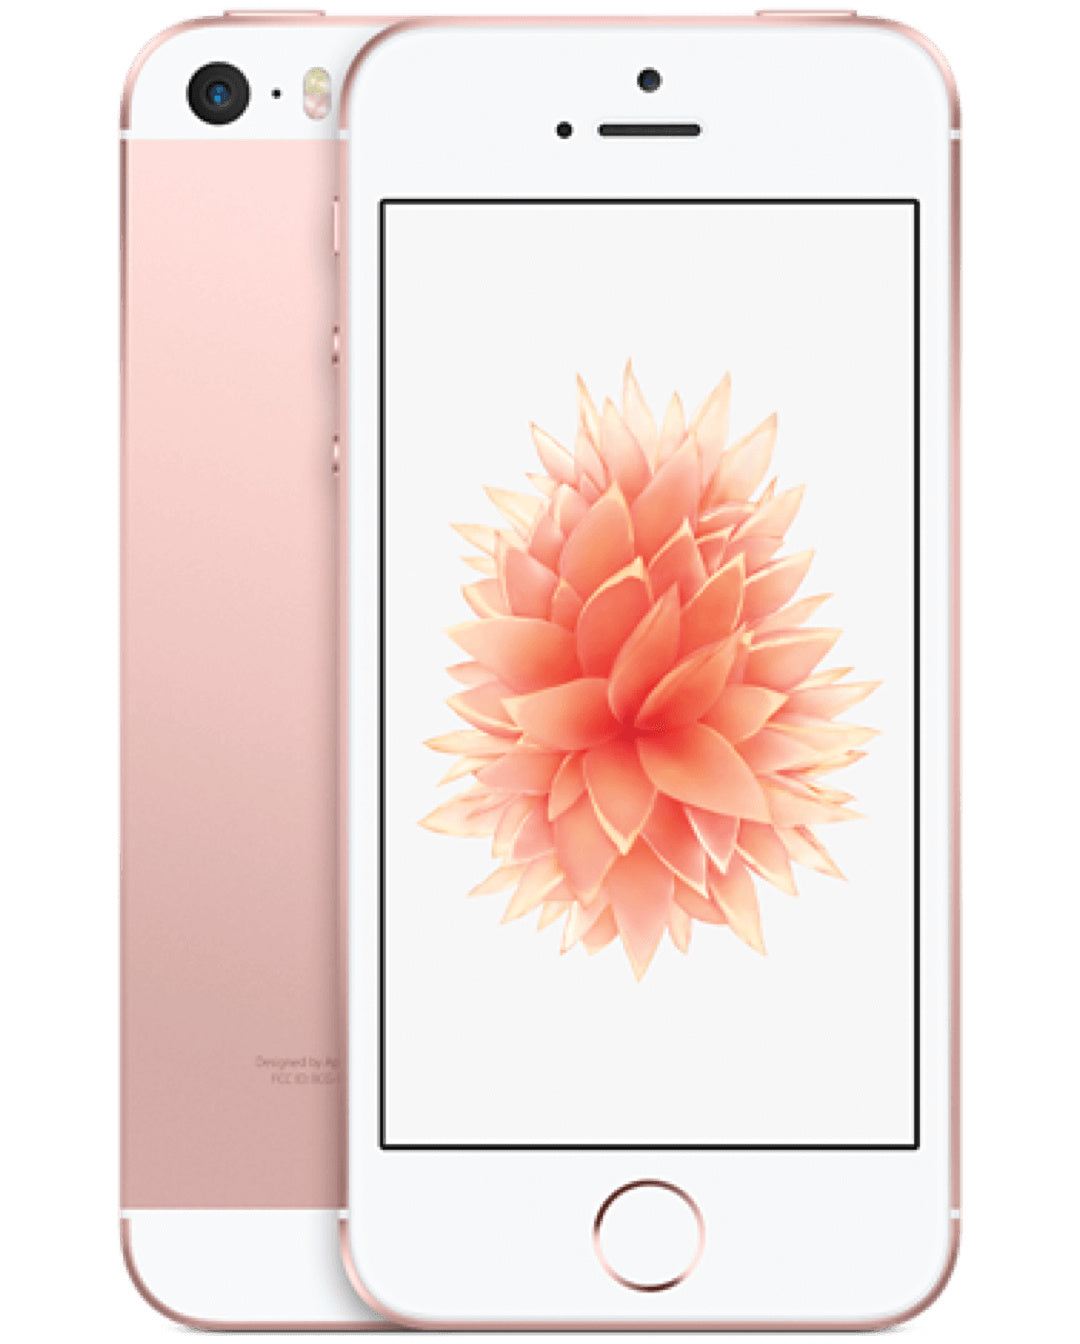 Refurbished Apple iPhone SE 128GB-RoseGold-Licht gebruikt